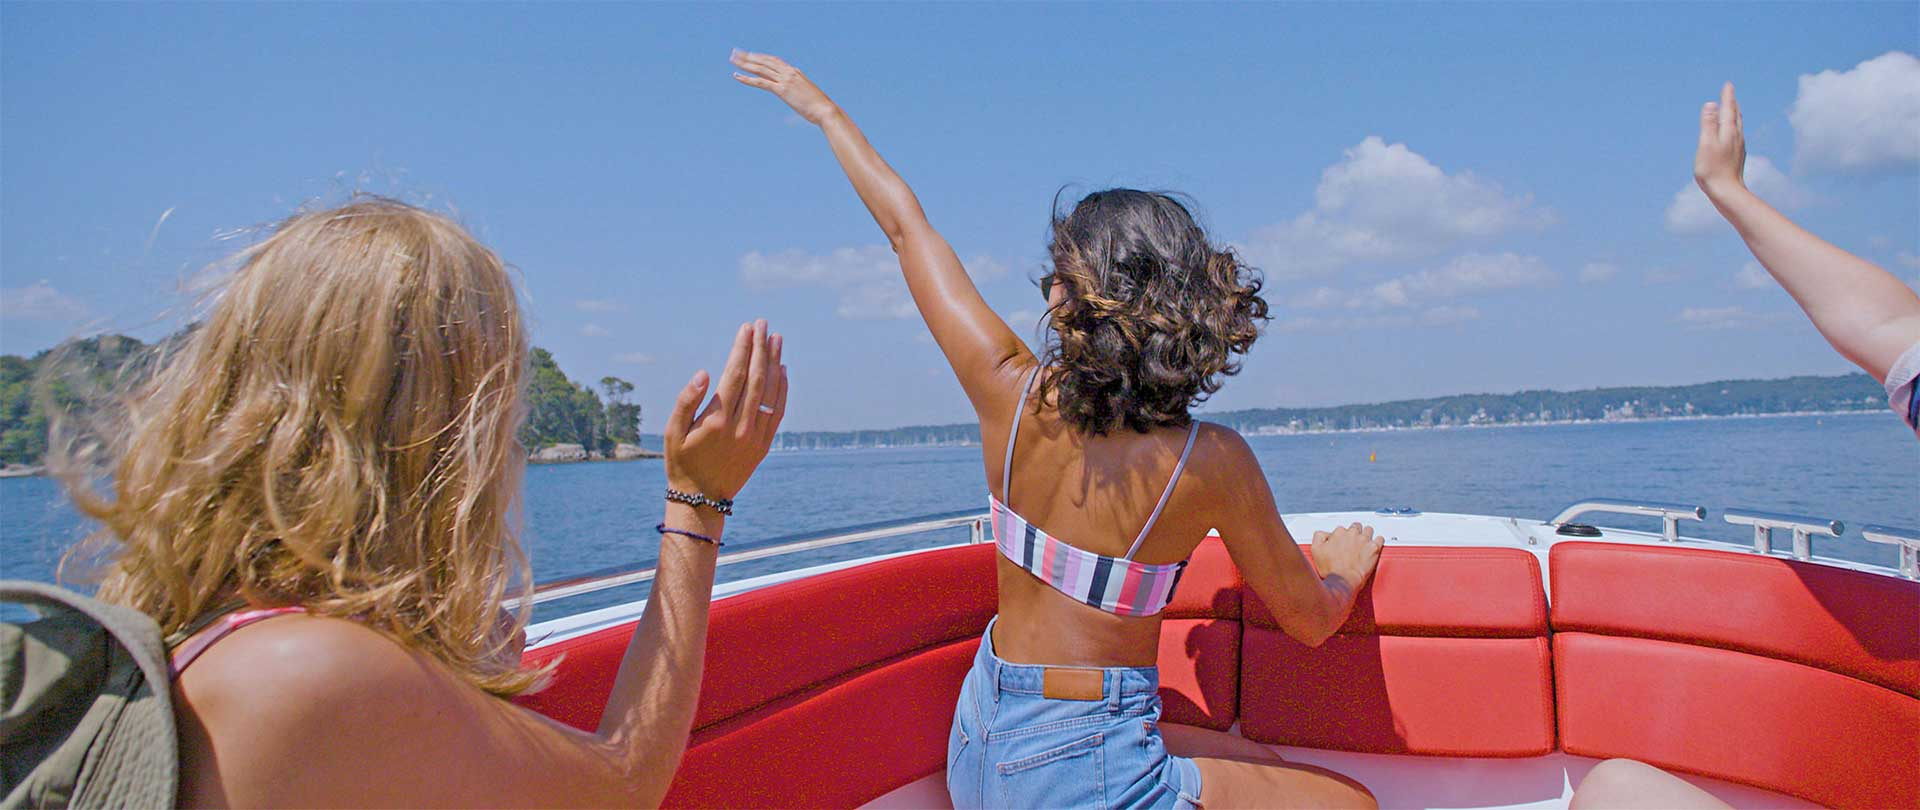 Waving-from-Boat